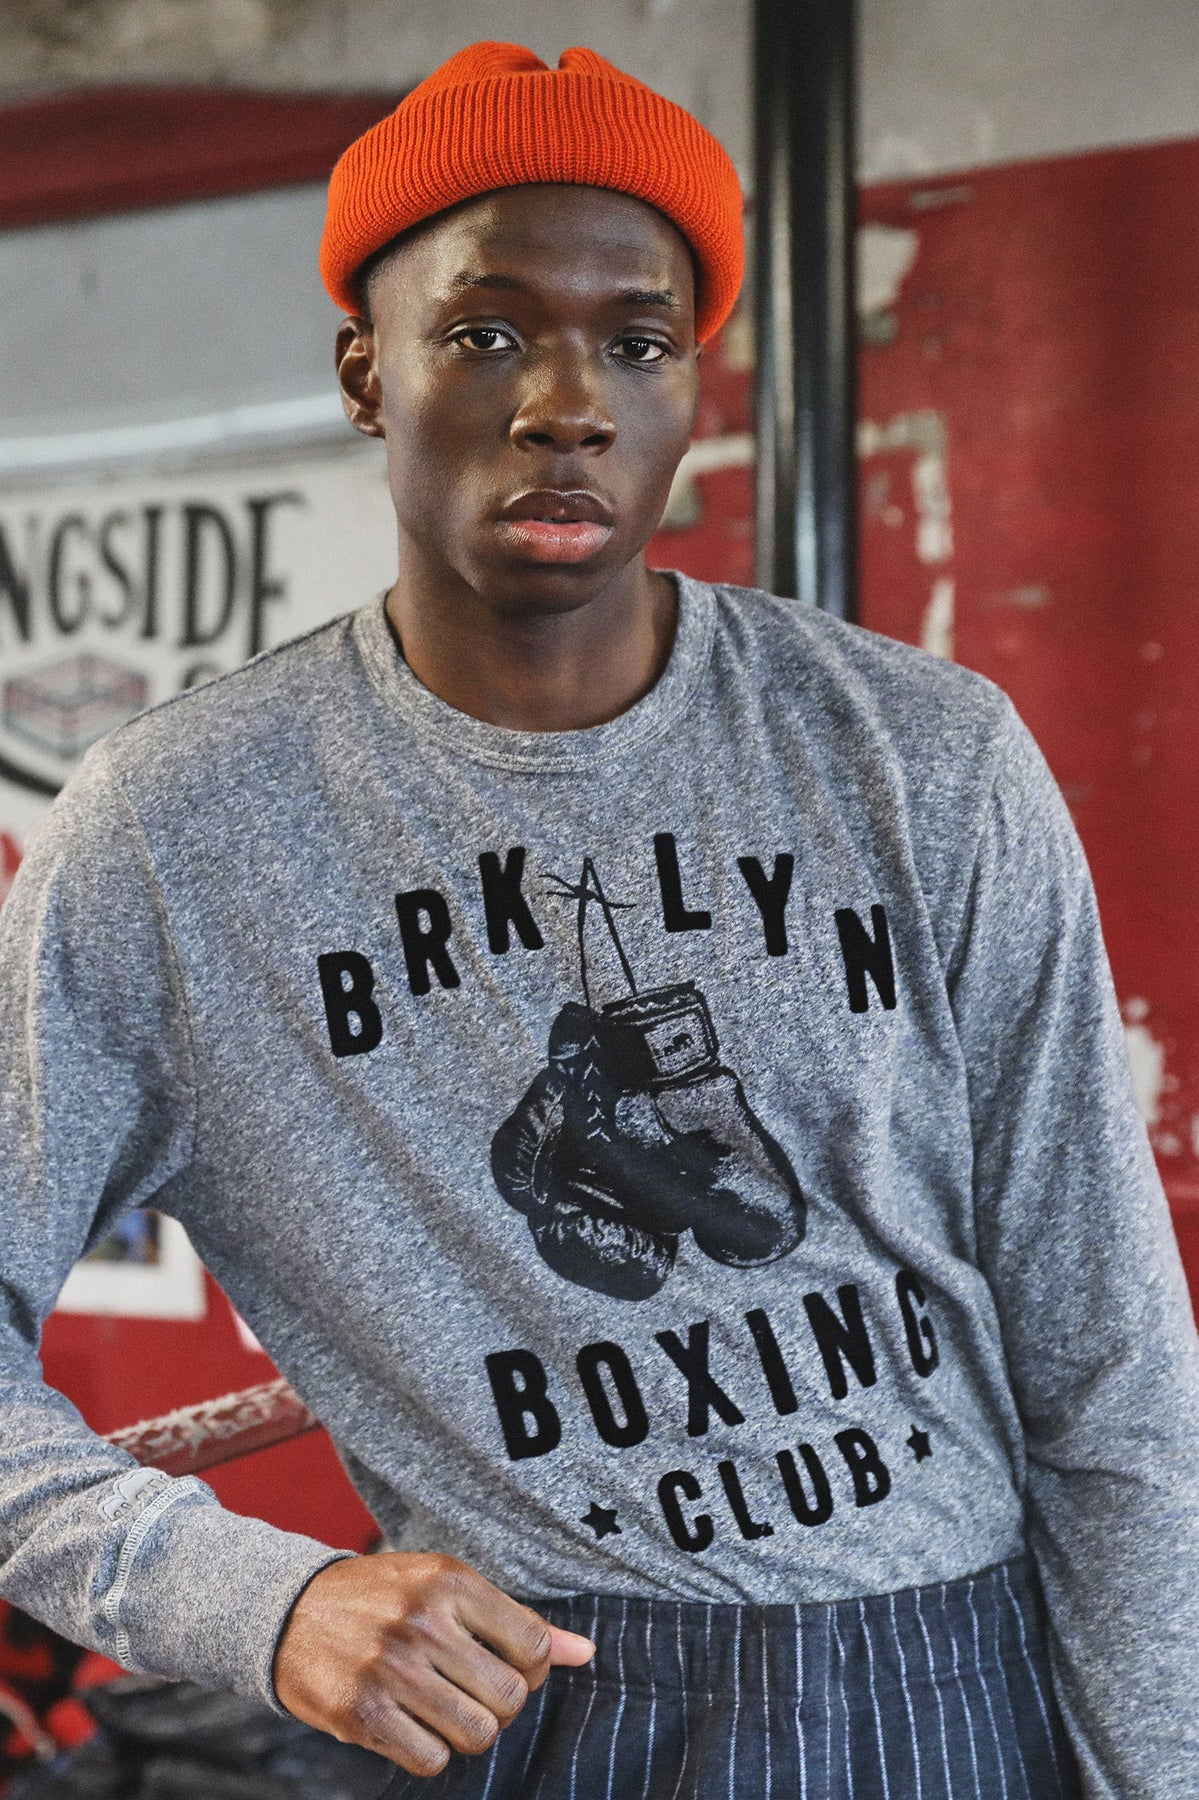 TS x Champion Limited Edition: The Brooklyn Circus Longsleeve Boxing Tee